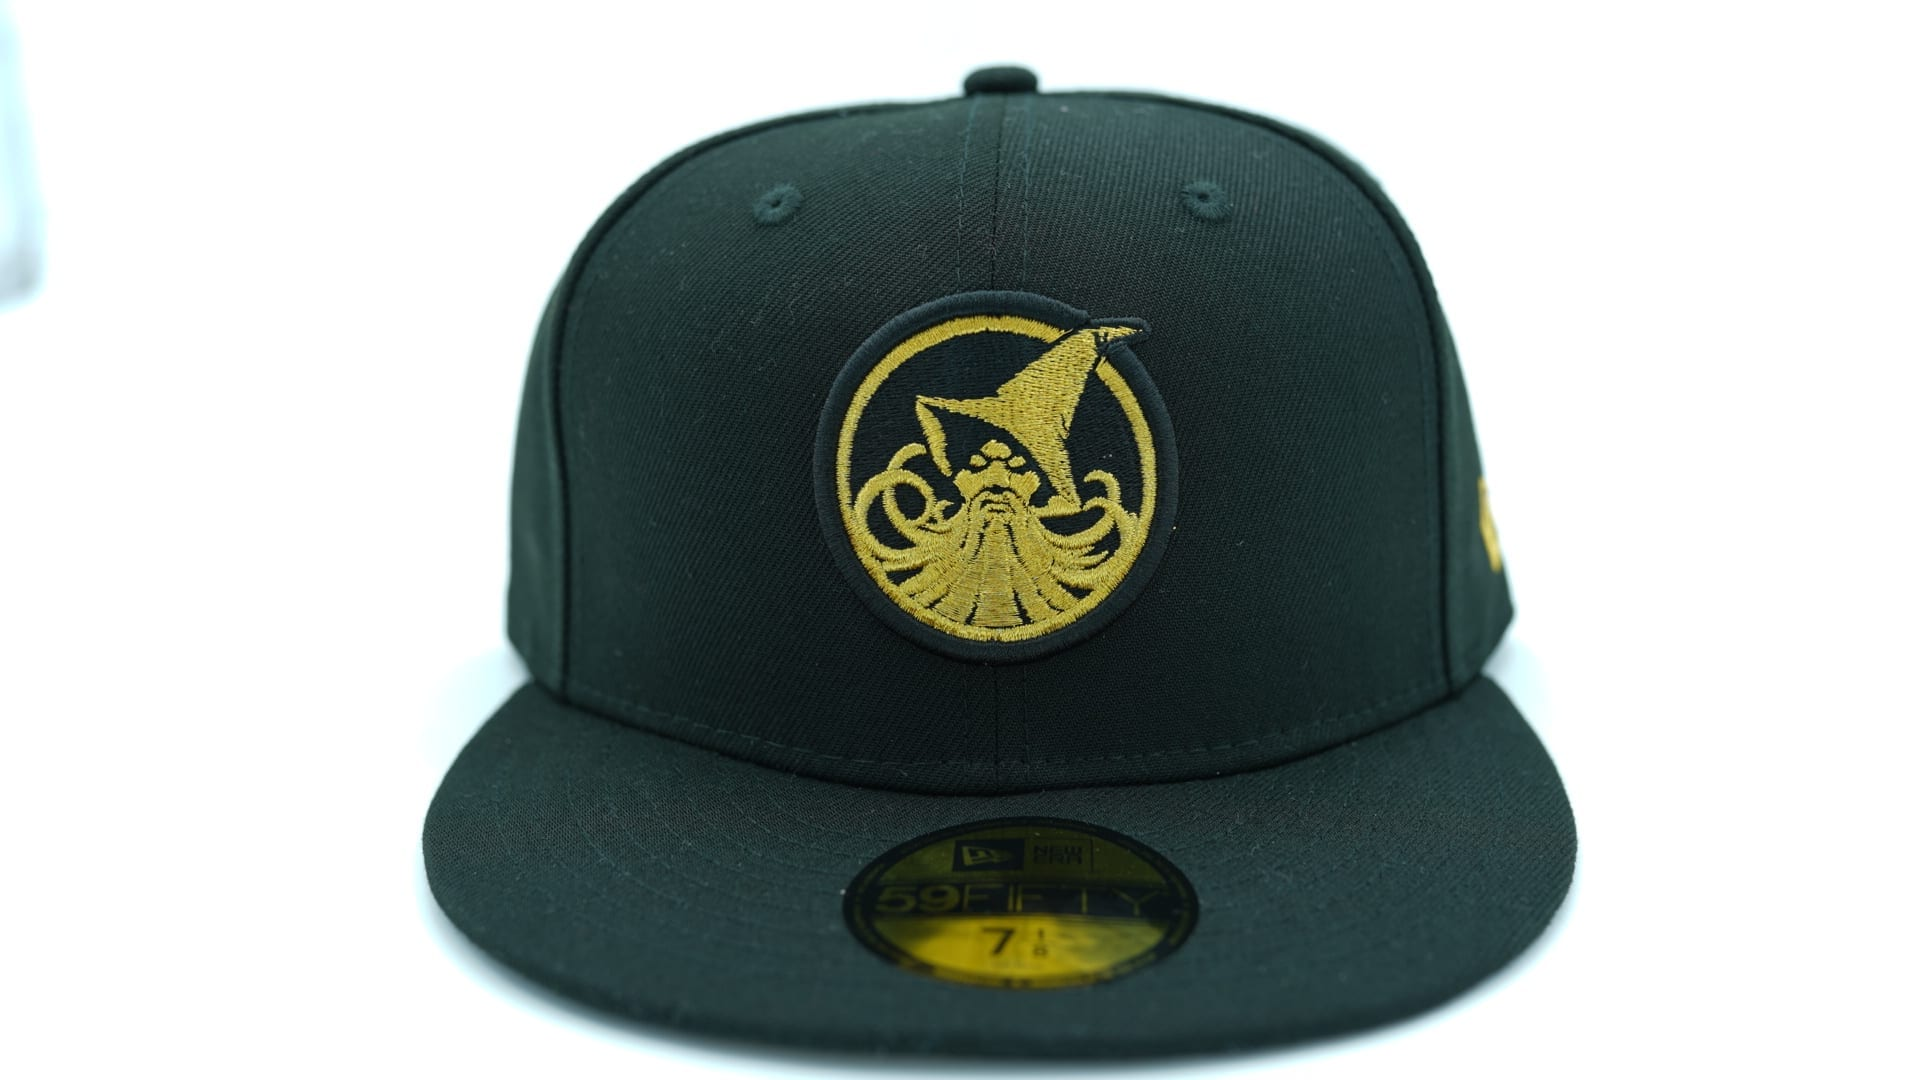 vans-new-era-59Fifty-fitted-baseball-cap-hat